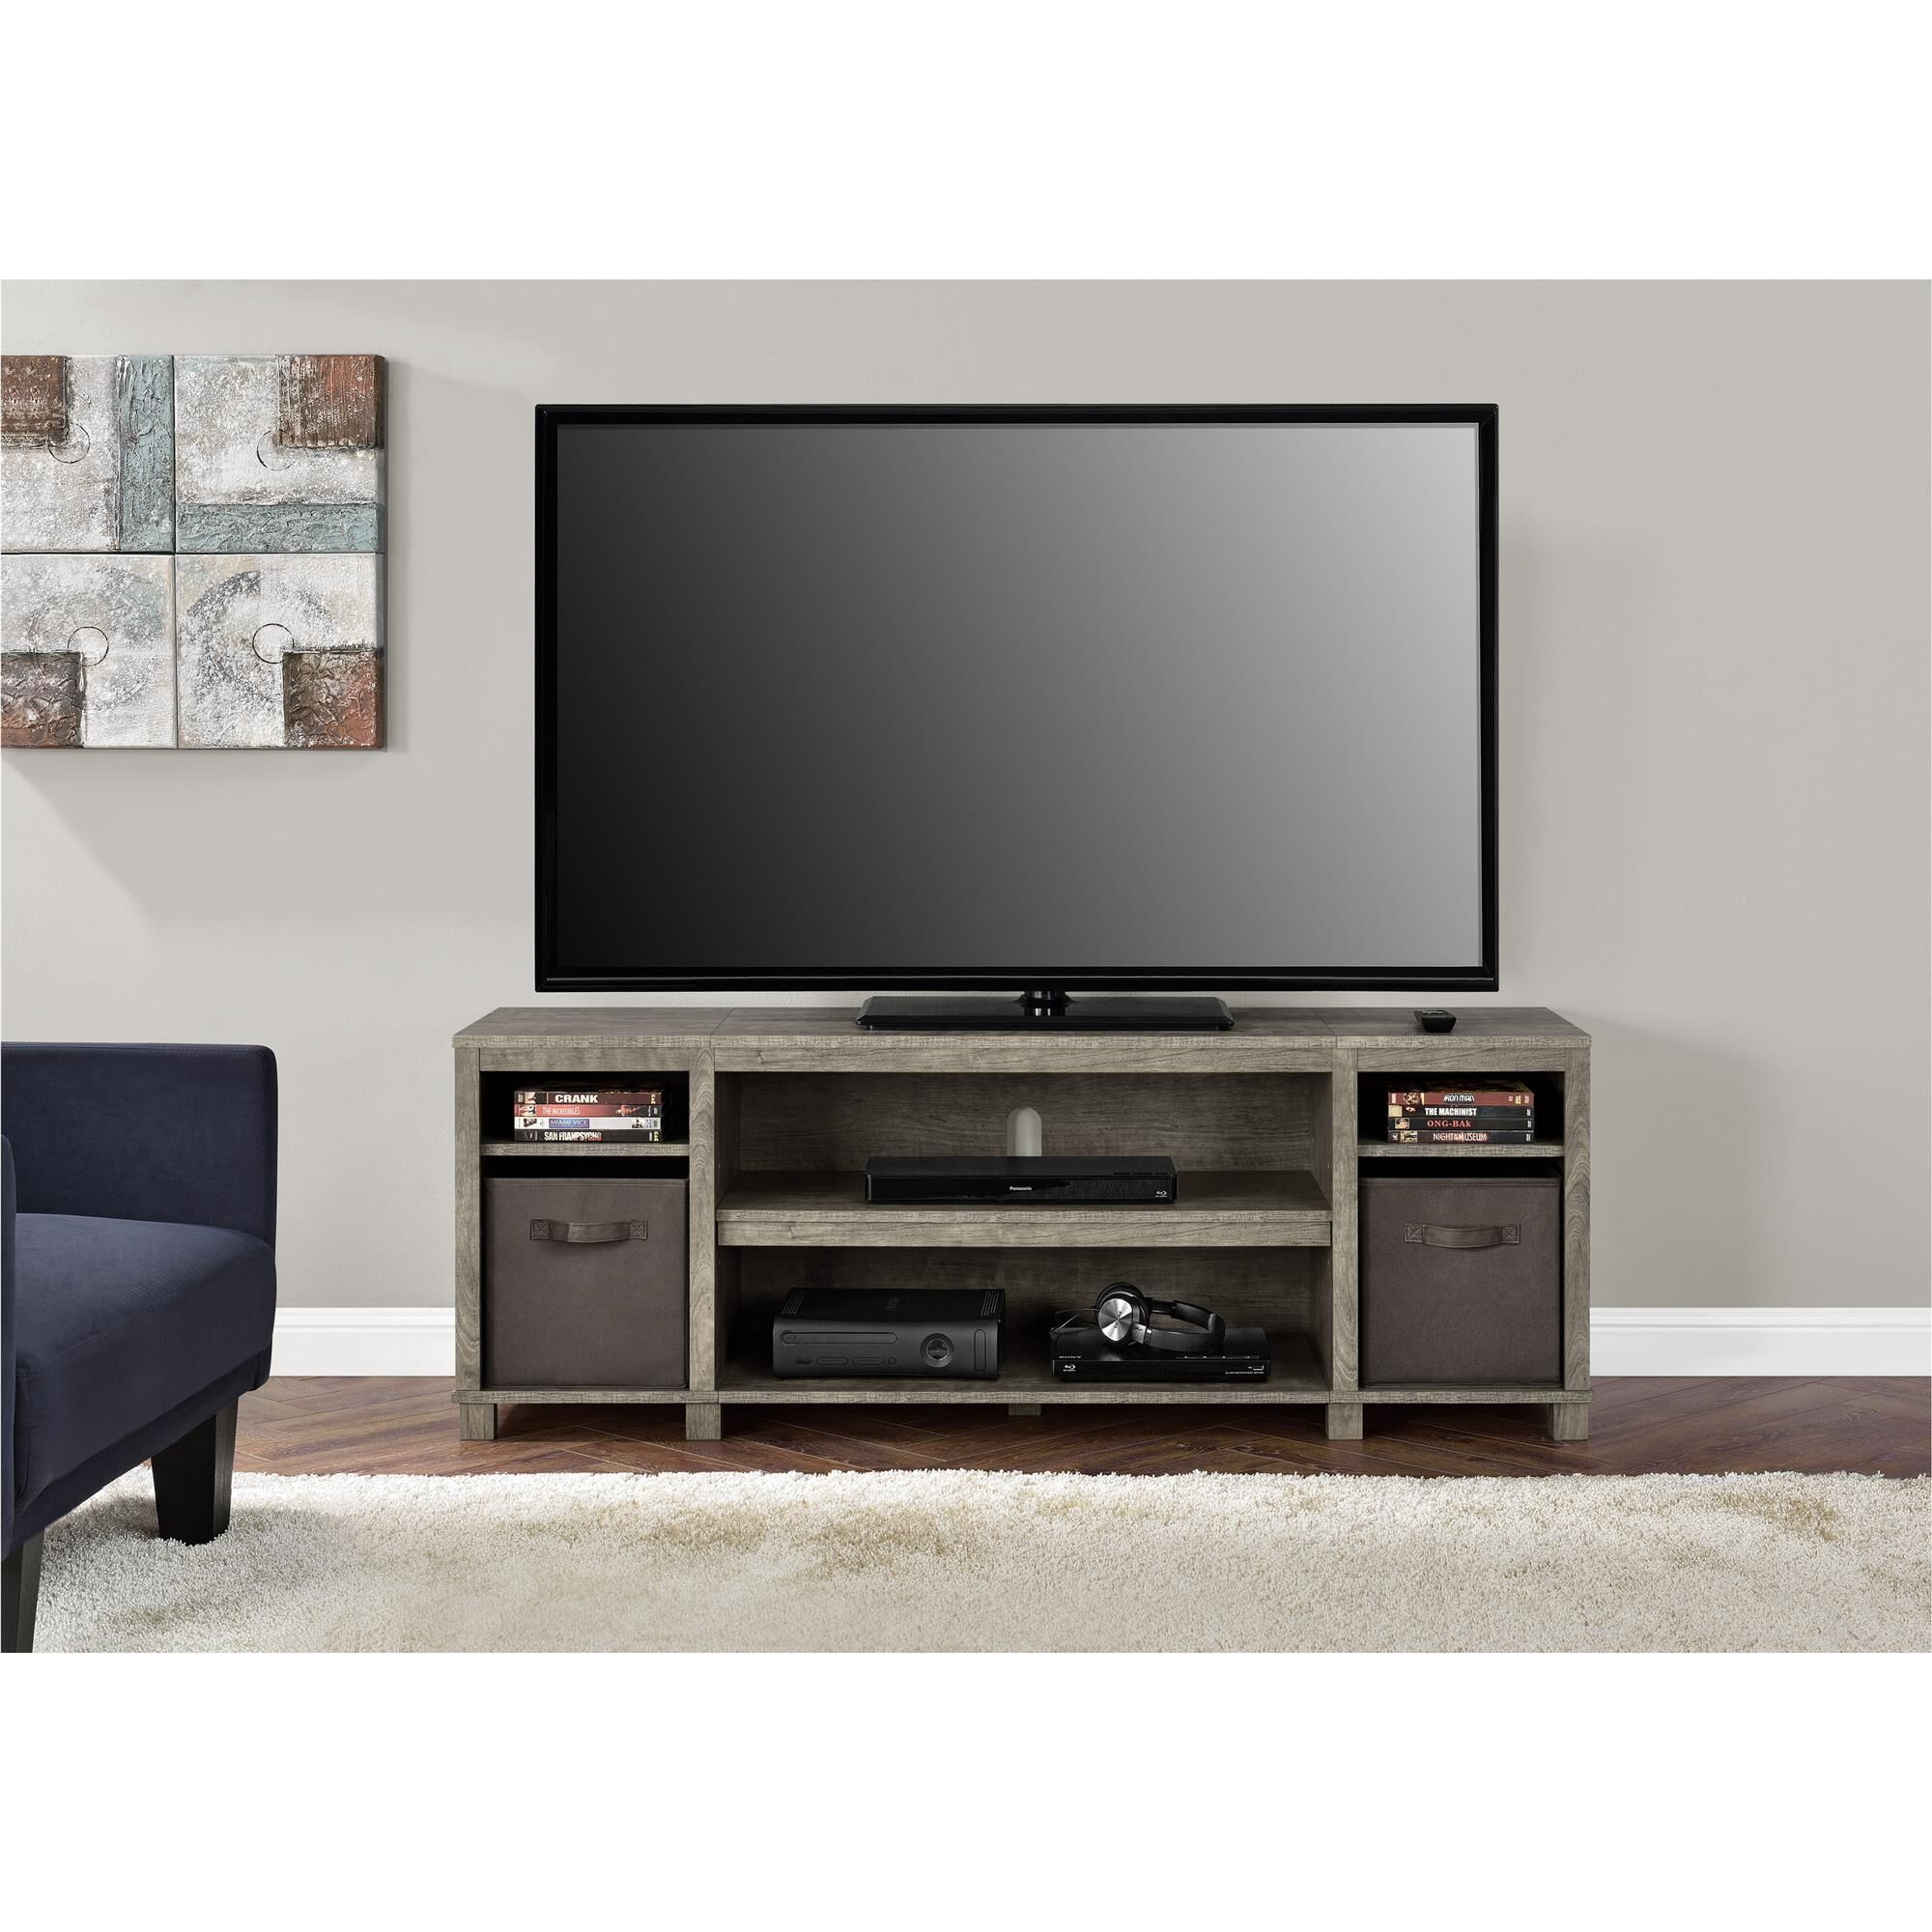 Napkin Ring 58'' TV Stand Color: Weathered Oak